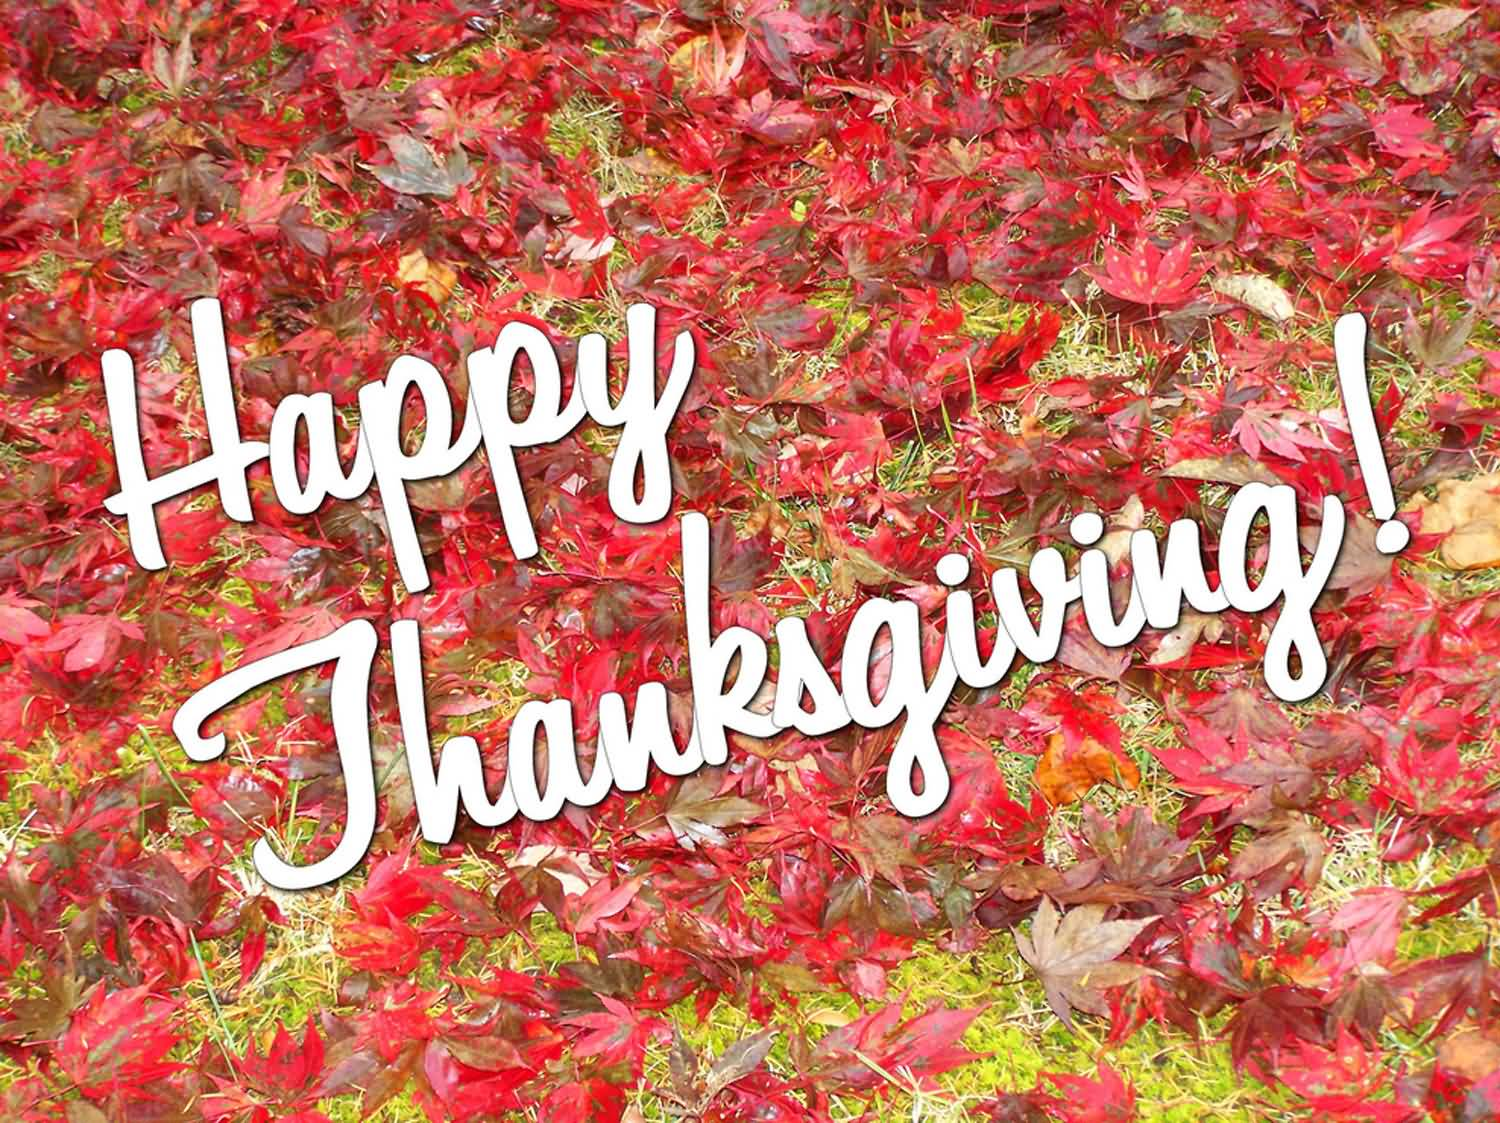 55 latest happy thanksgiving day 2016 greeting pictures and images happy thanksgiving 2016 wishes picture m4hsunfo